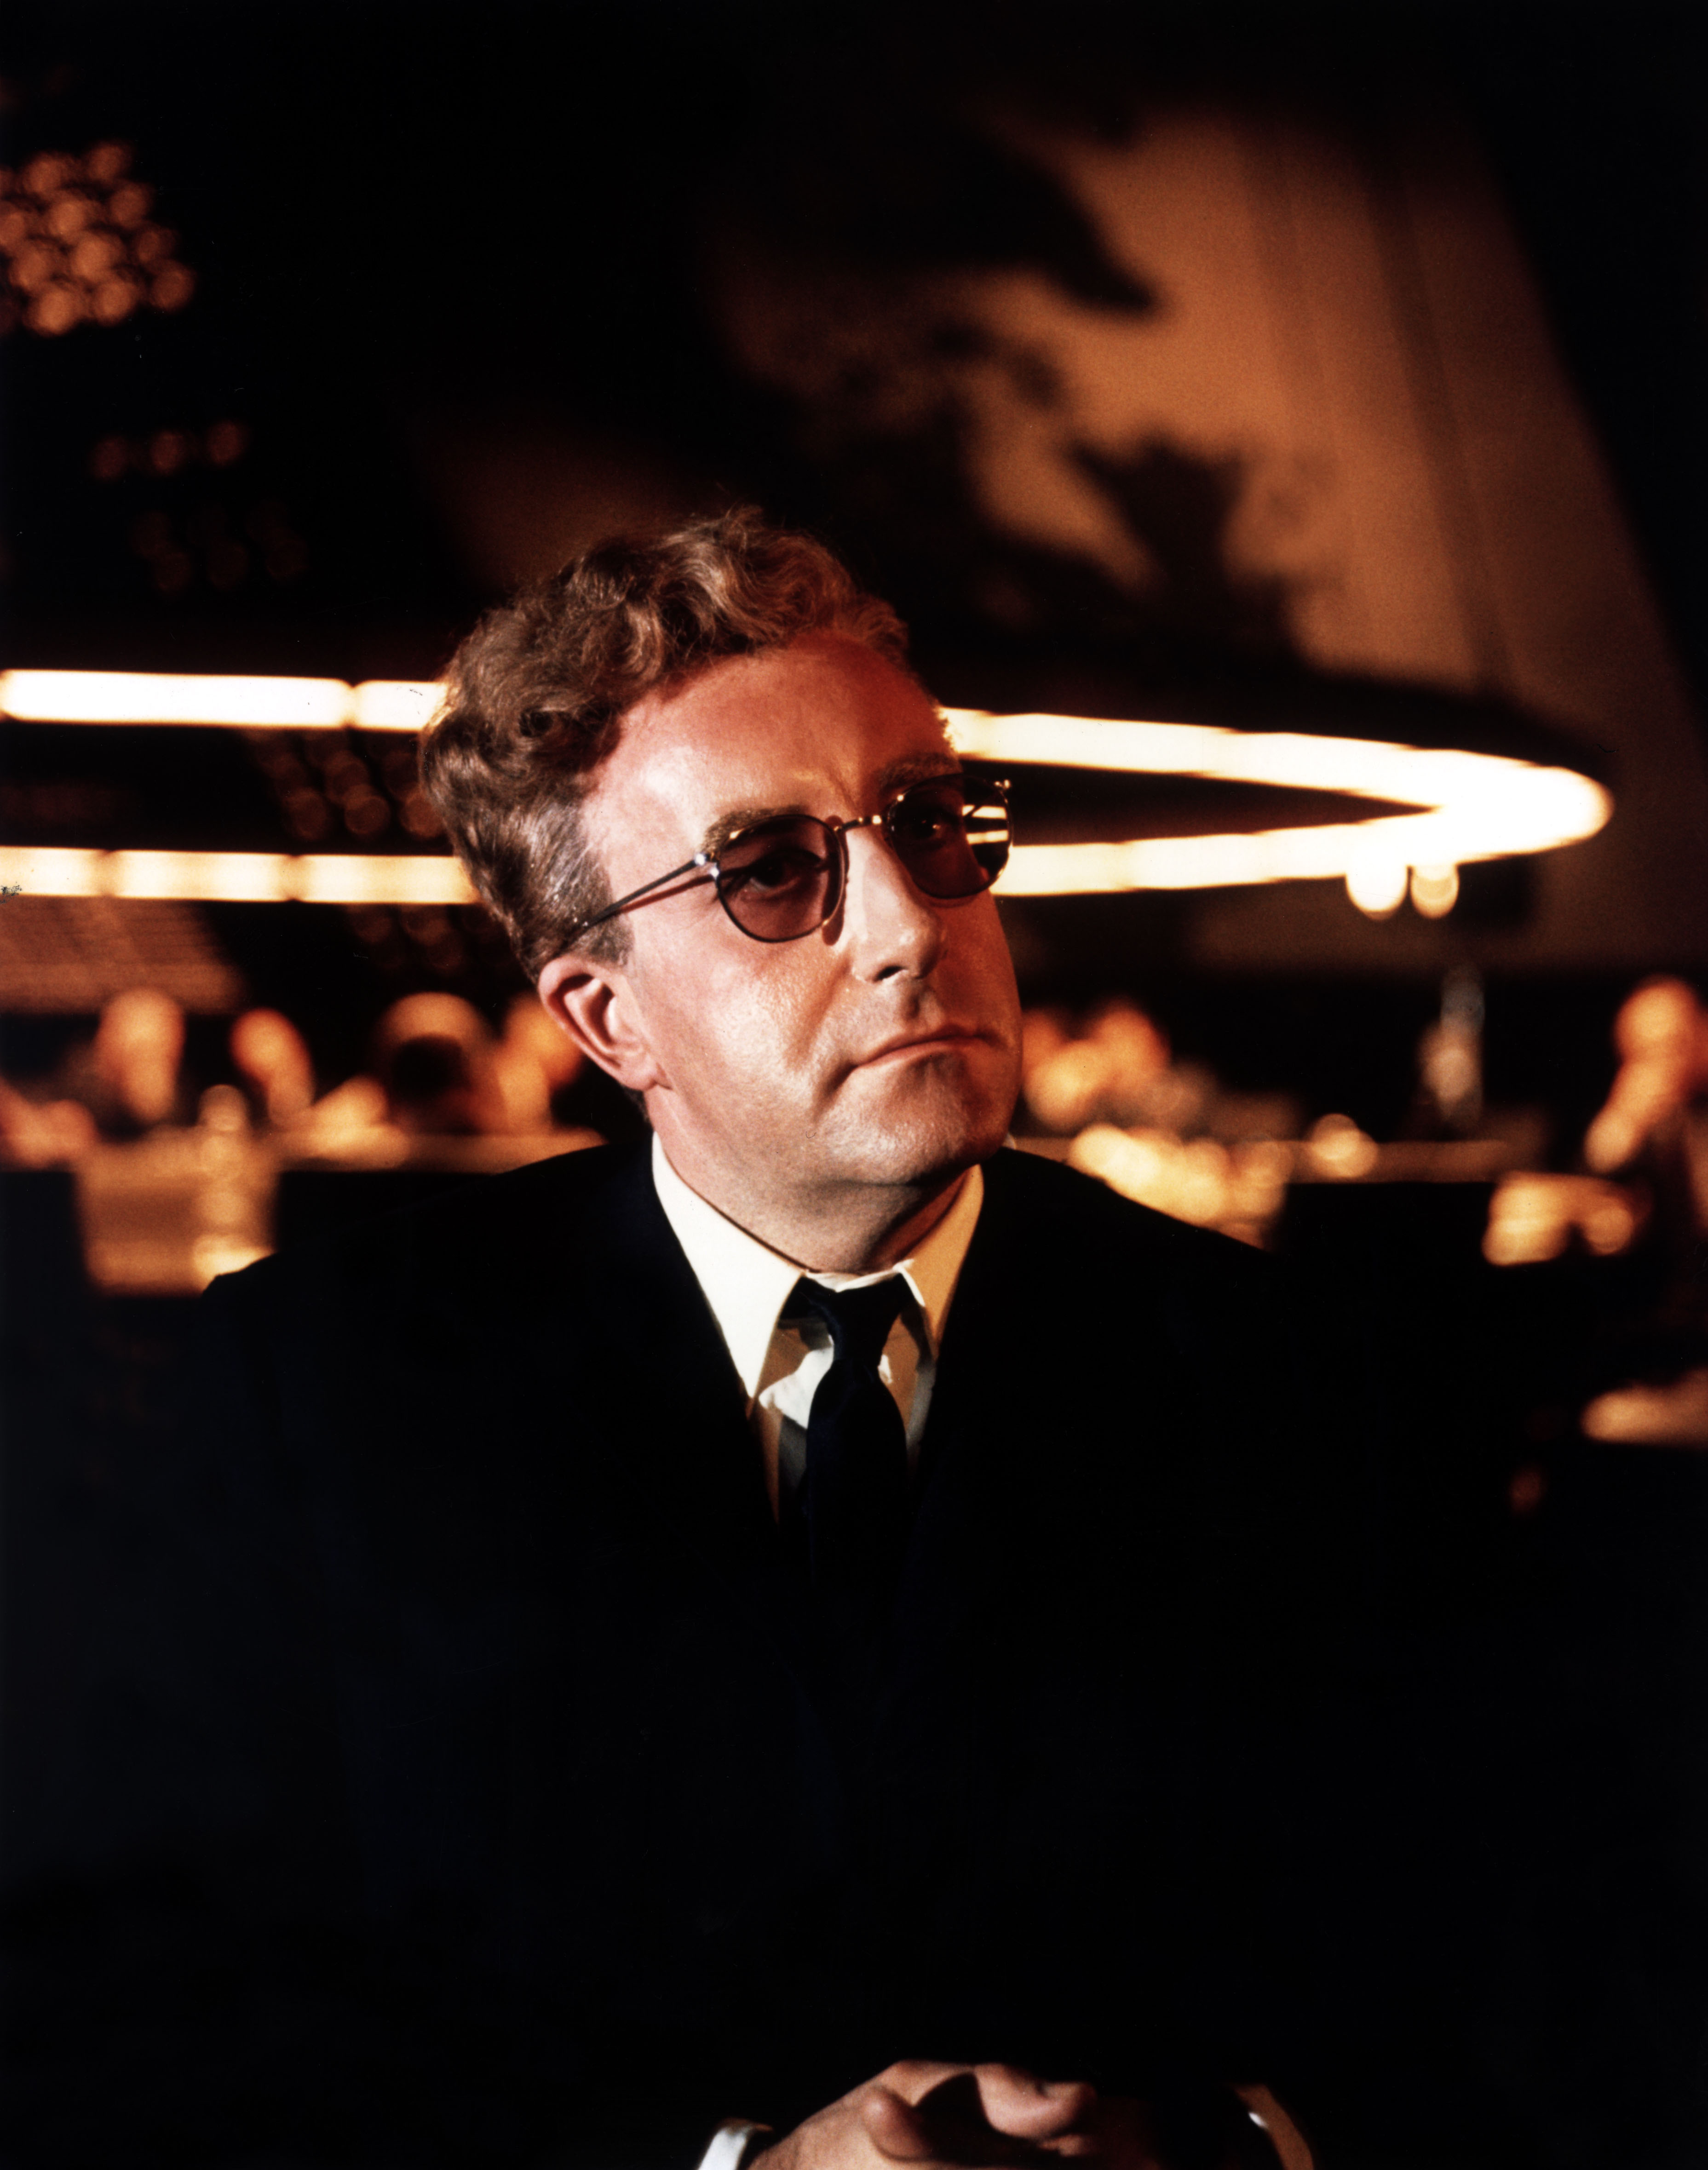 Dr. Strangelove or How I Learned to Stop Worrying and Love the Bomb - IMDb